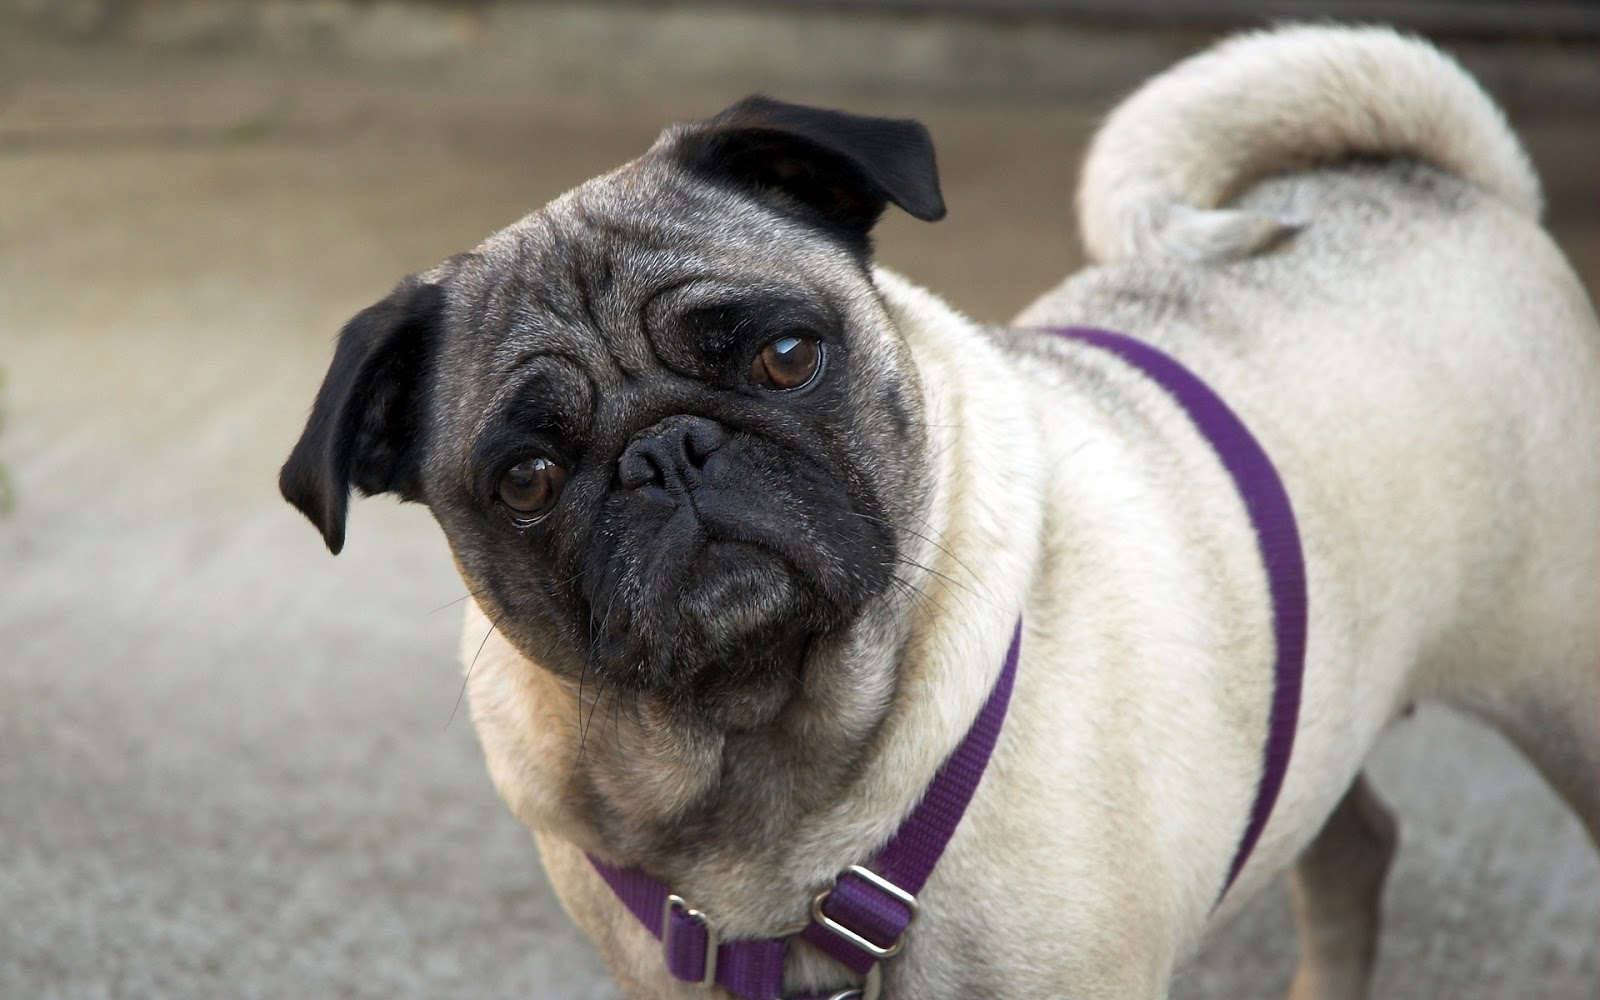 Pug Dog Best HD Wallpapers 2013 ~ All About HD Wallpapers